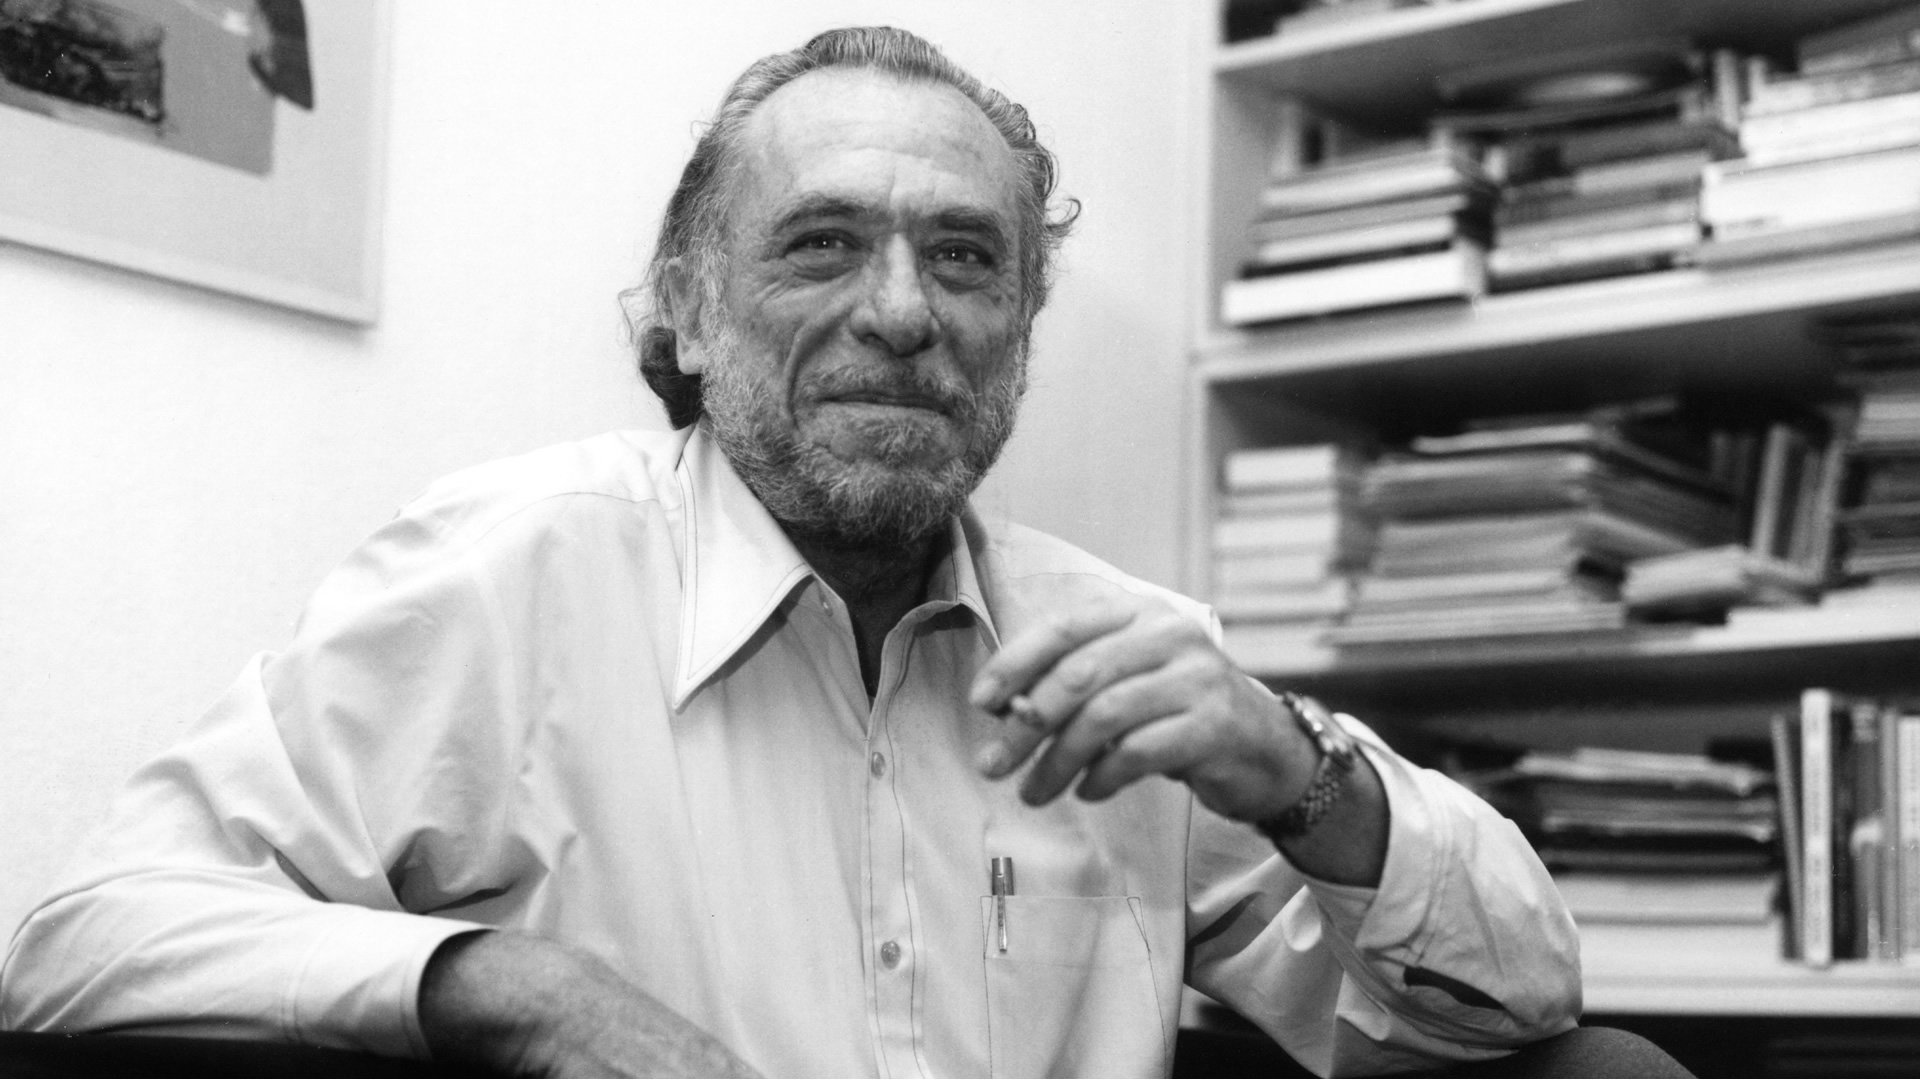 19 Quotes About Life By Charles Bukowski That'll Get You Thinking